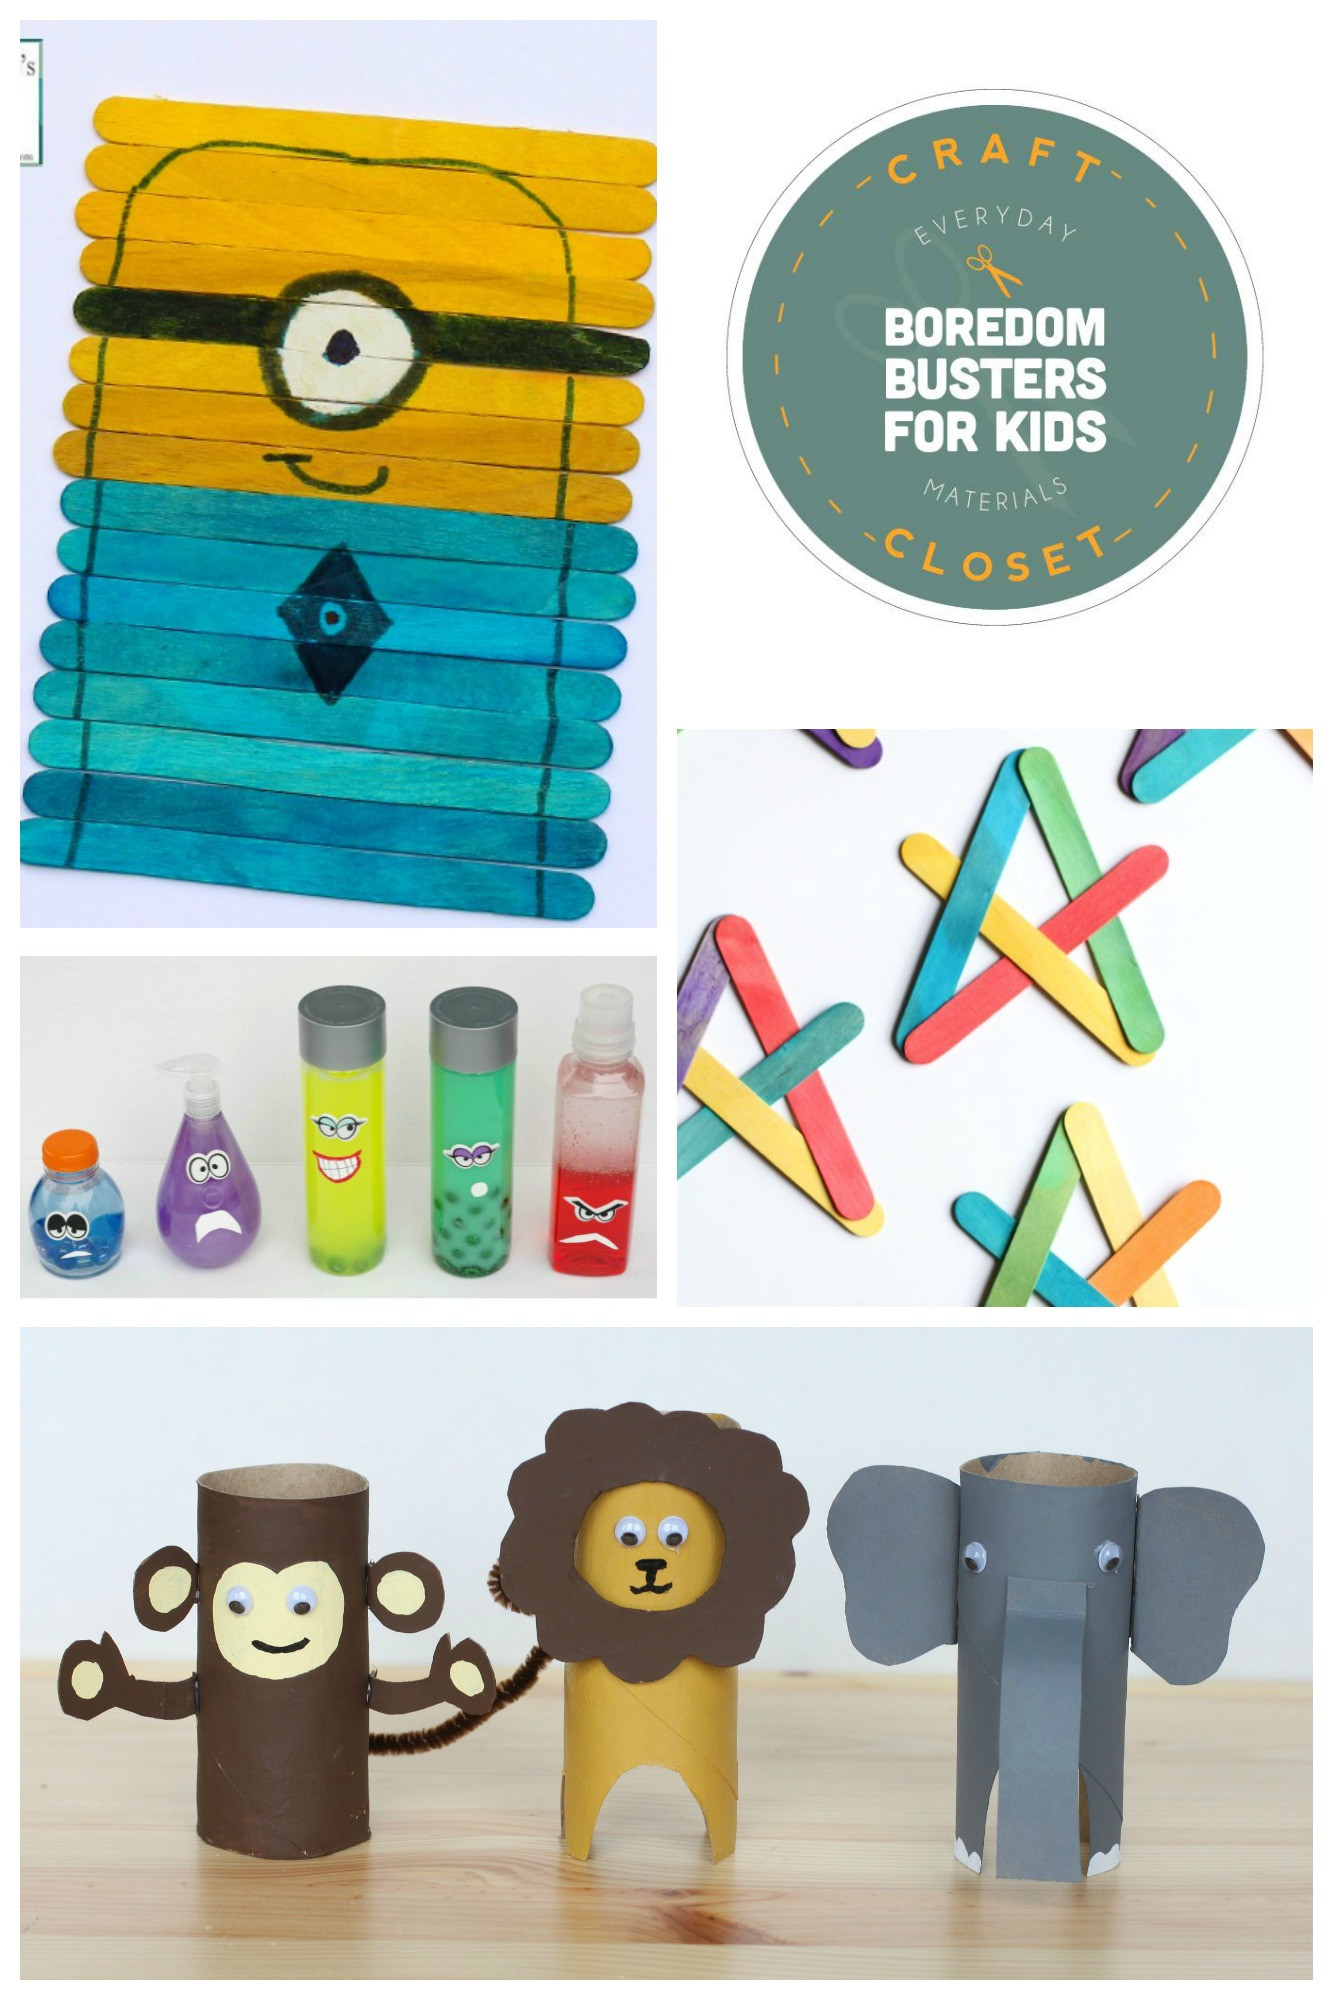 Best ideas about Fun Crafts For Kids . Save or Pin 25 Crafts and Activities for Kids Using Everyday Now.